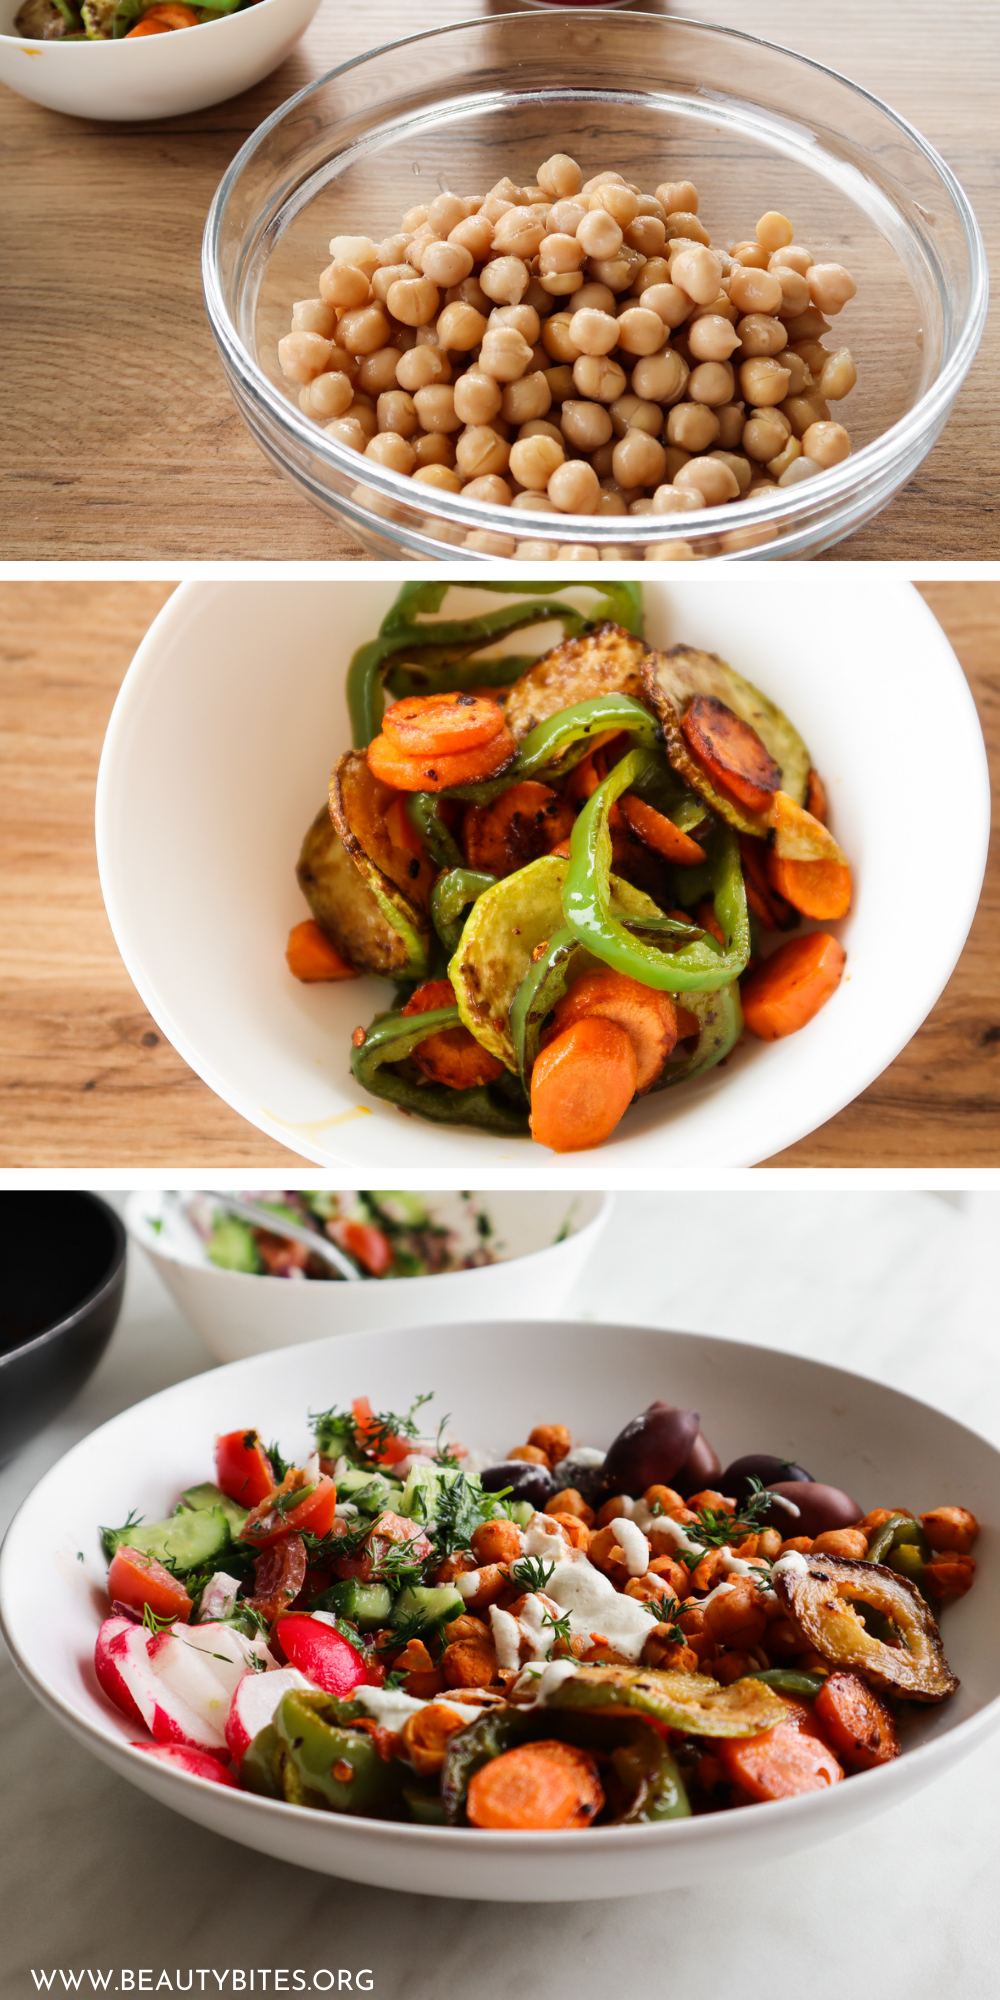 Try these spicy roasted vegetable healthy lunch bowls, they're are absolutely delicious! This is a wonderful healthy lunch idea that will fill you up, is full of flavor, gluten free dairy free and vegan!